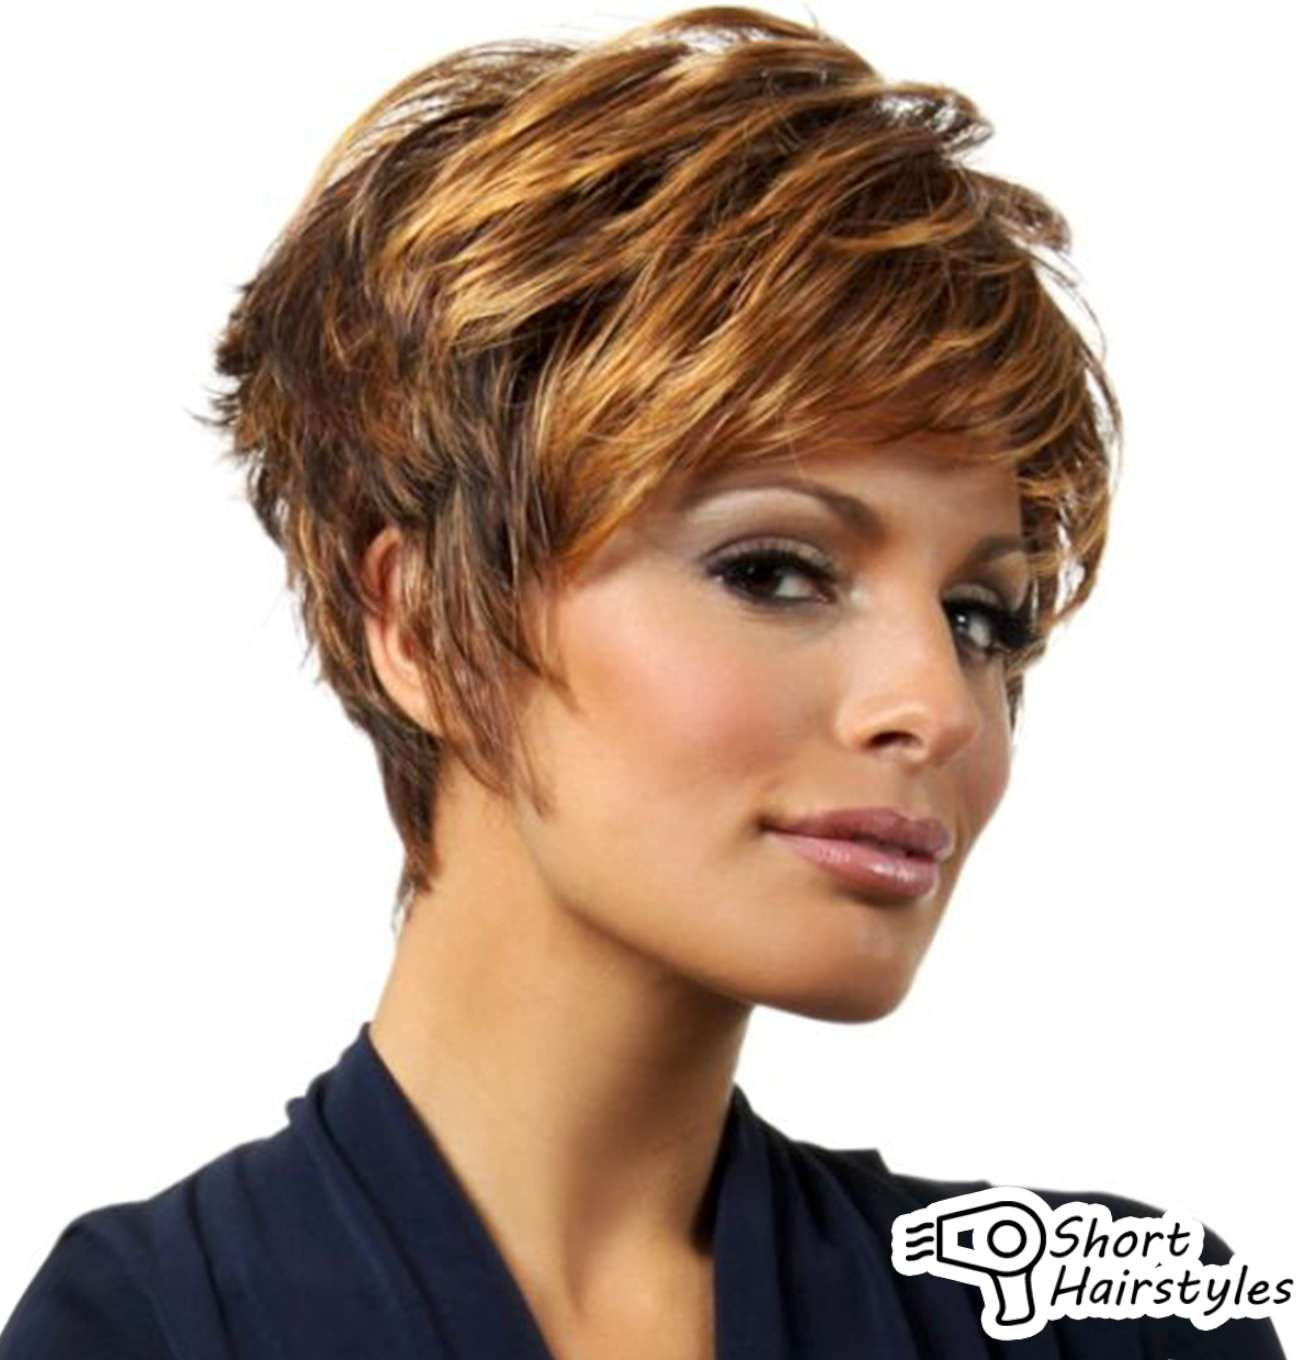 Superb 1000 Images About Hairstyles On Pinterest Over 50 Short Hair Hairstyles For Women Draintrainus